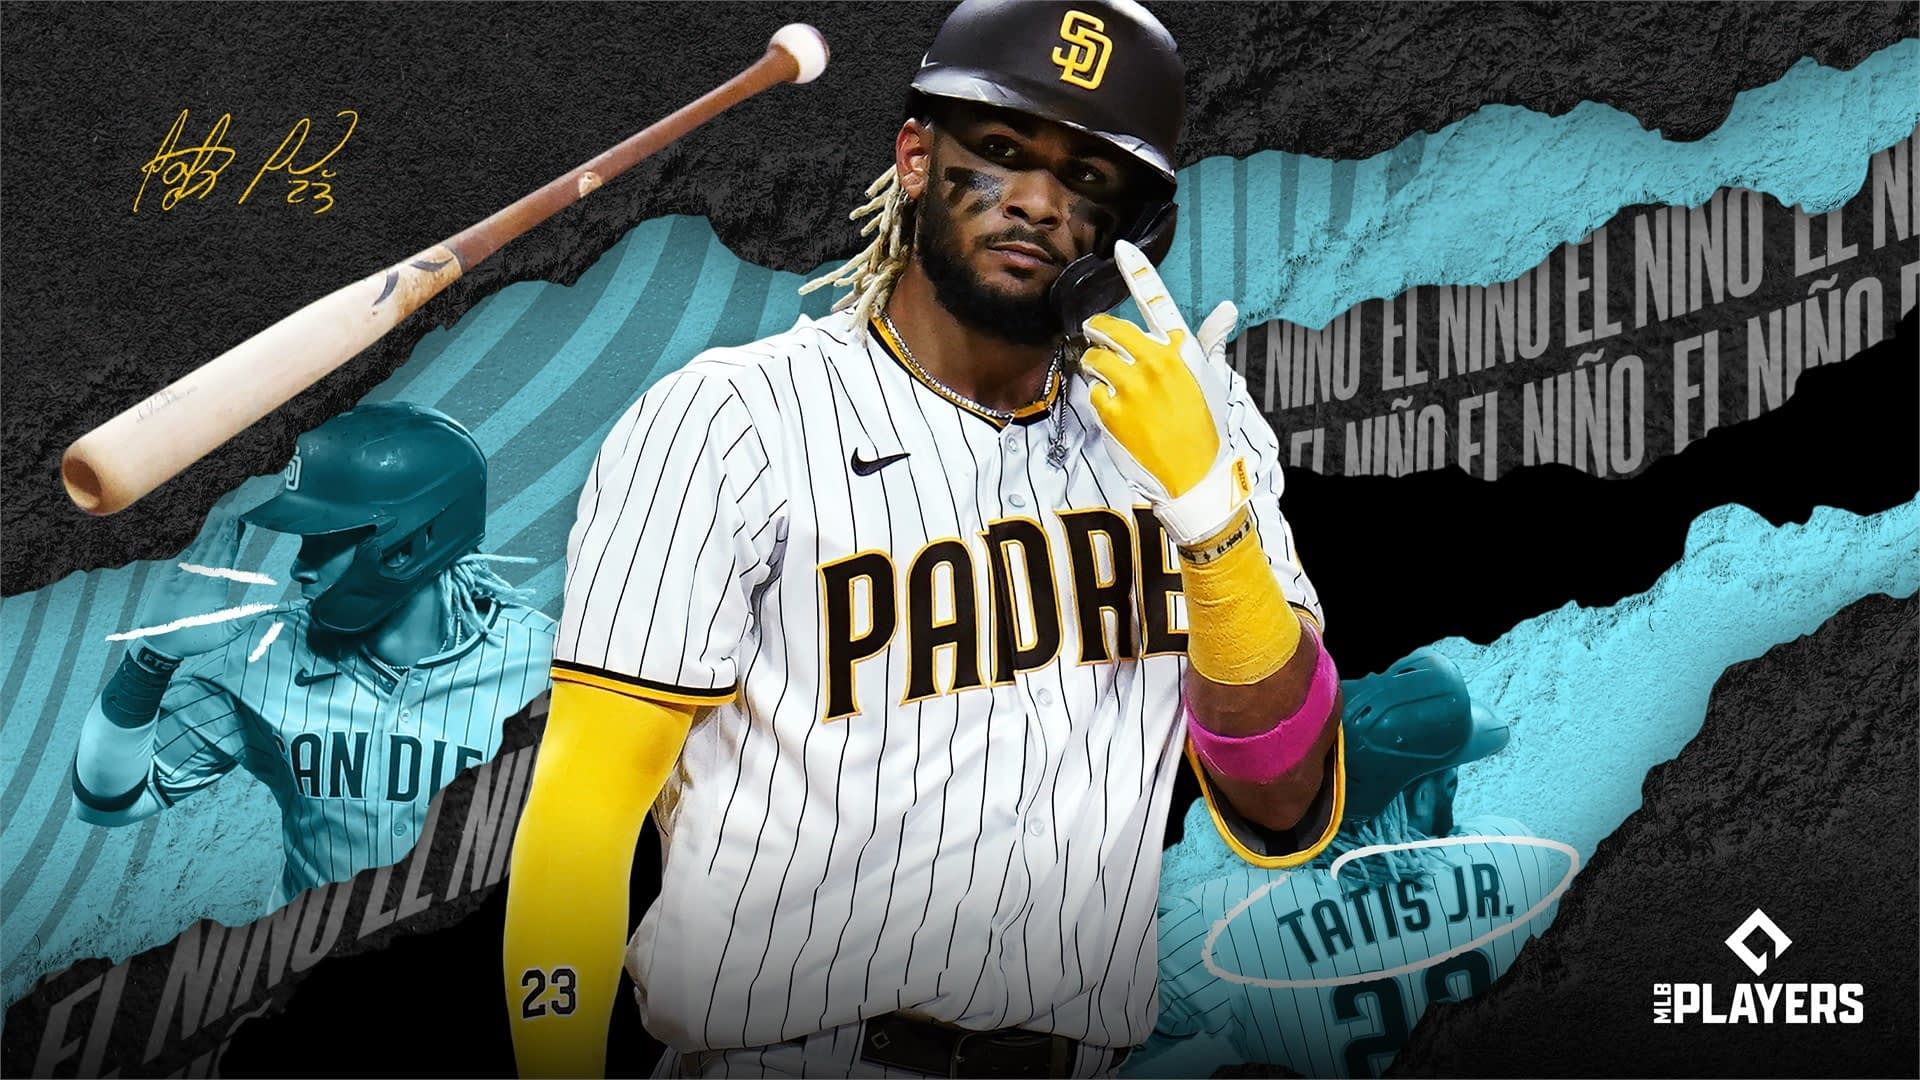 MLB The Show 21 Is Now Available For Digital Pre-order And Pre-download On Xbox One And Xbox Series X|S 1